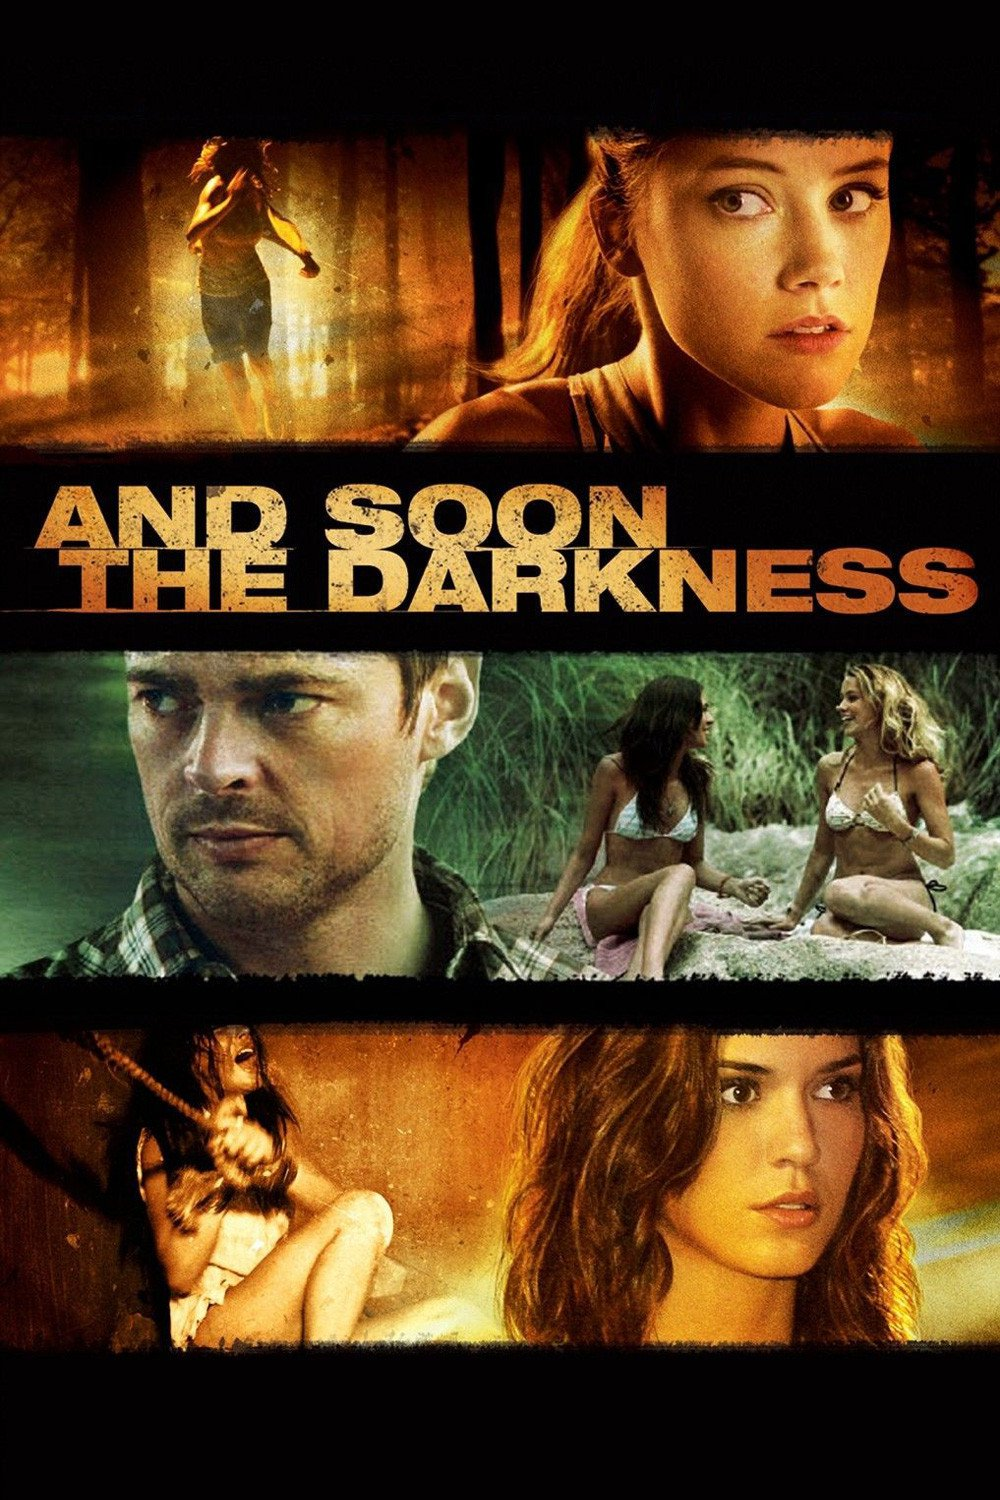 And Soon the Darkness, 2010